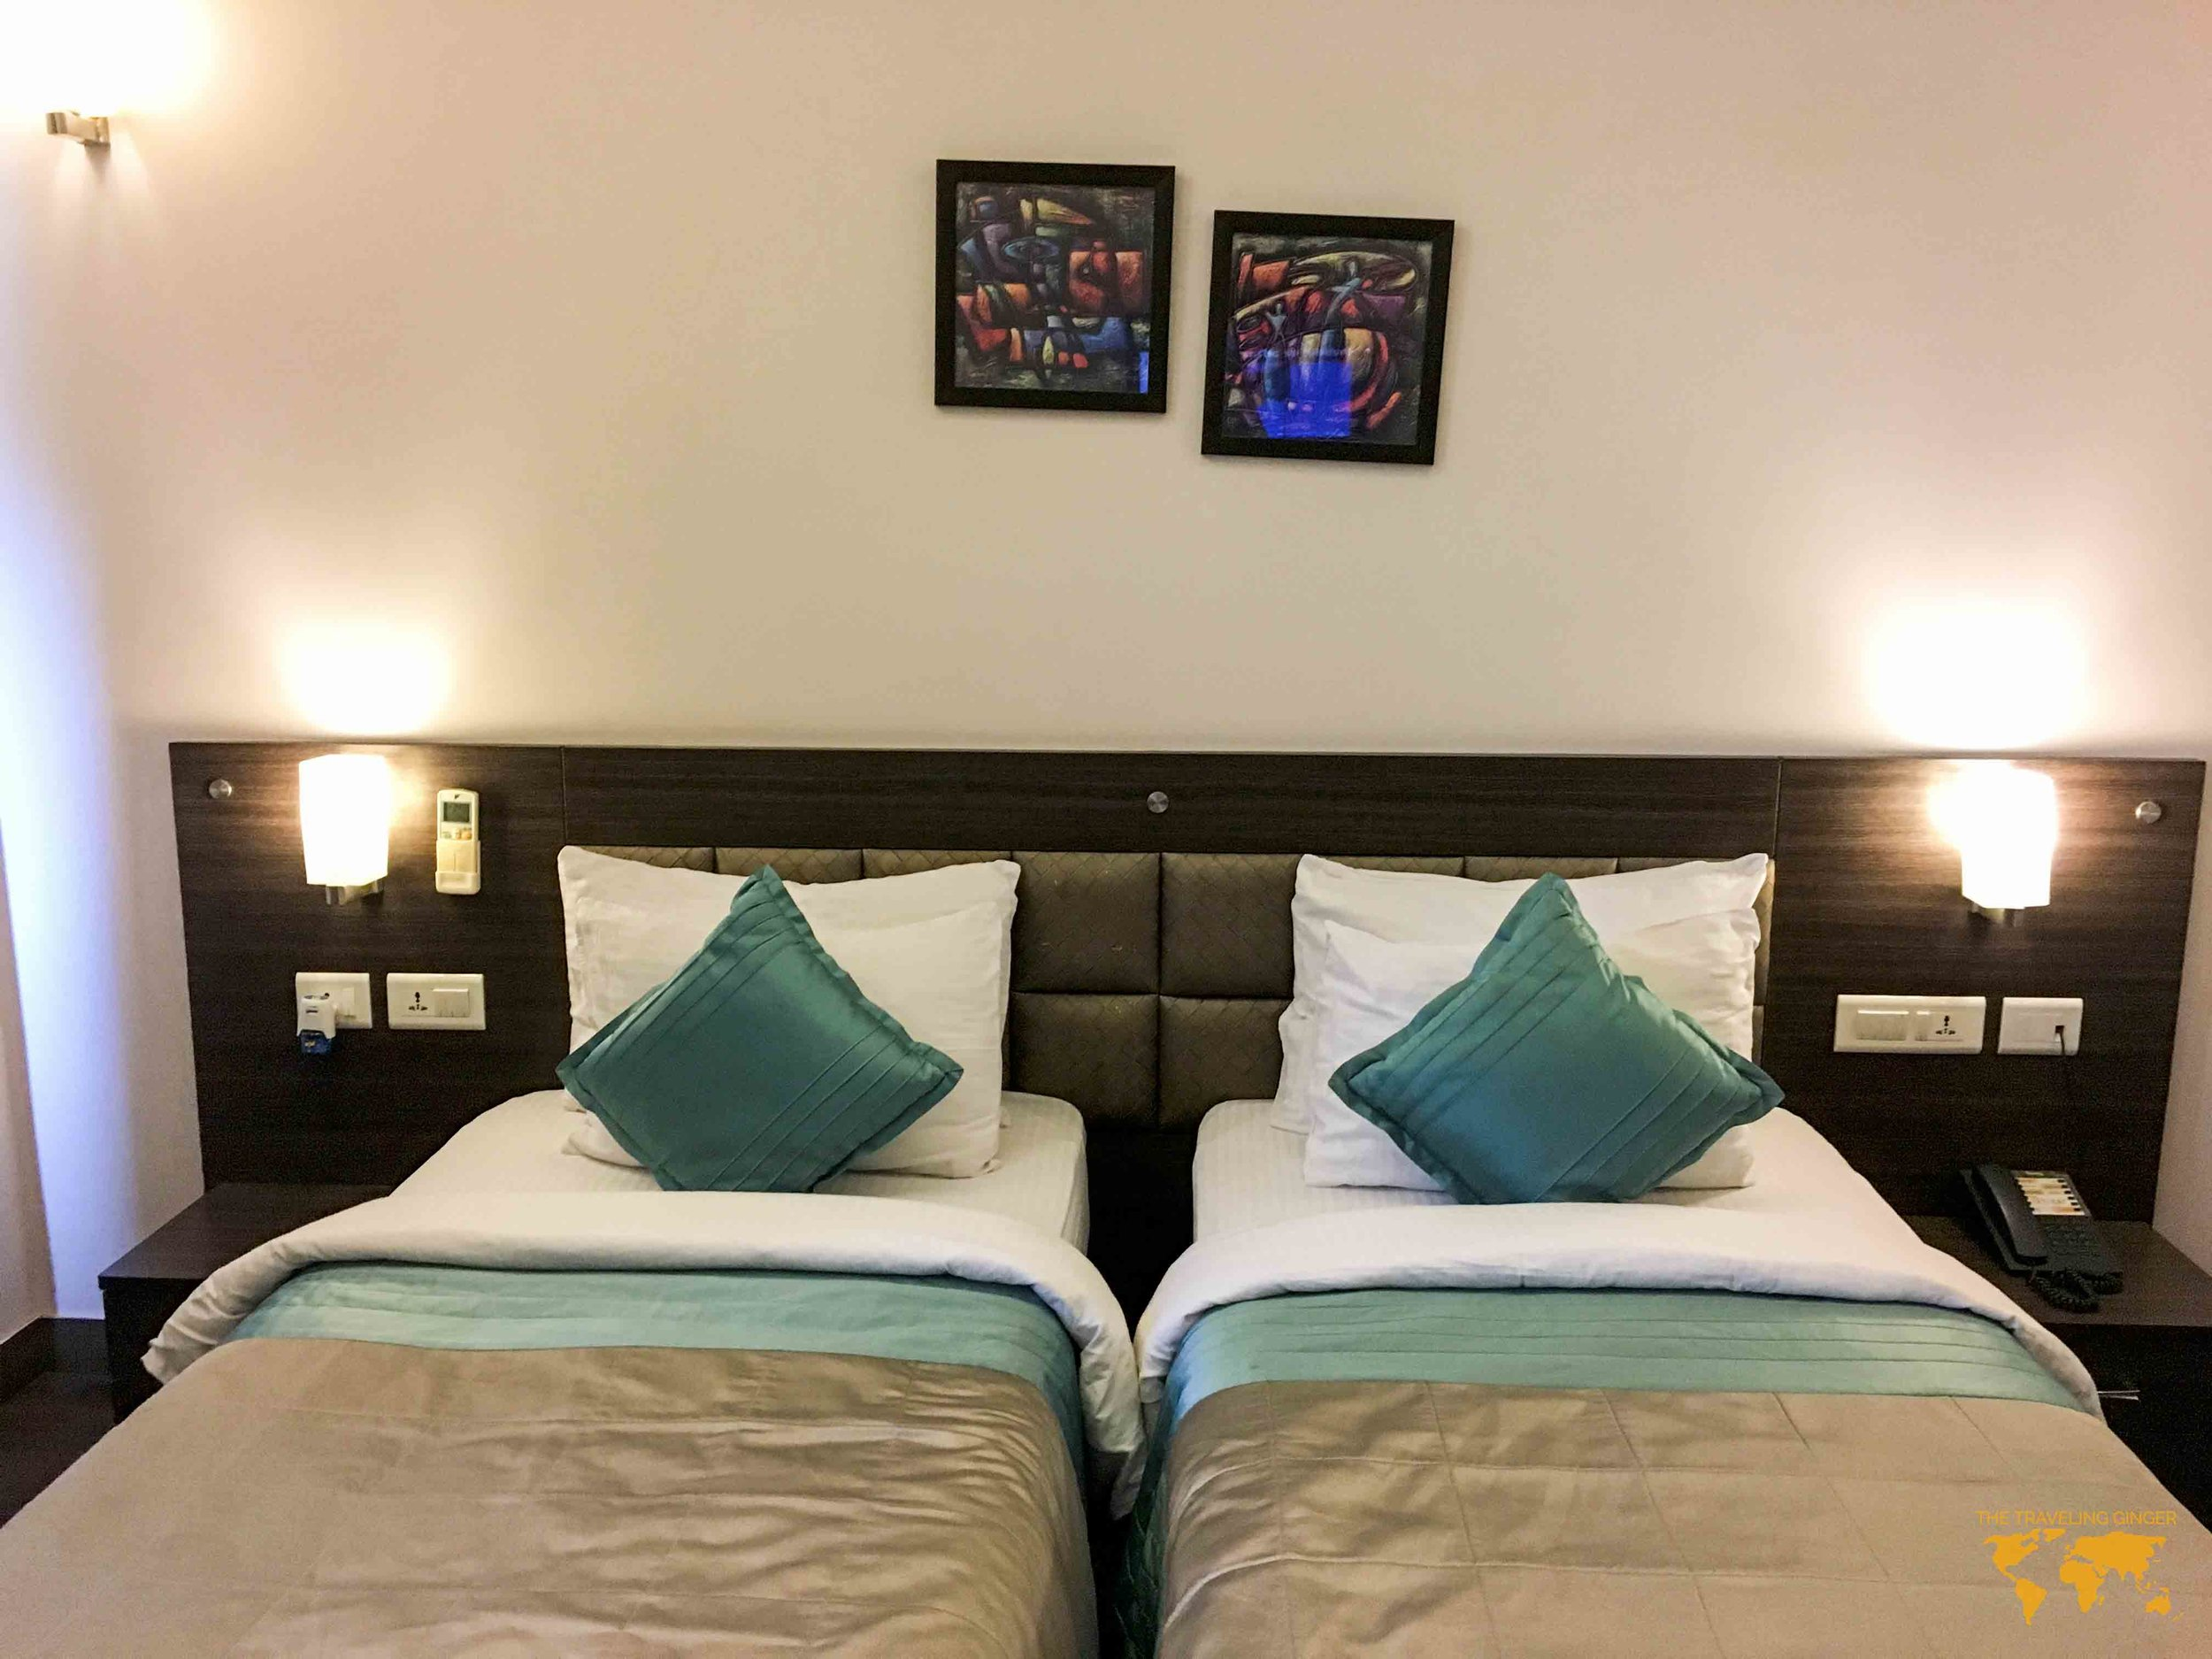 REVIEW OF THE RETREAT HOTEL IN AGRA, INDIA